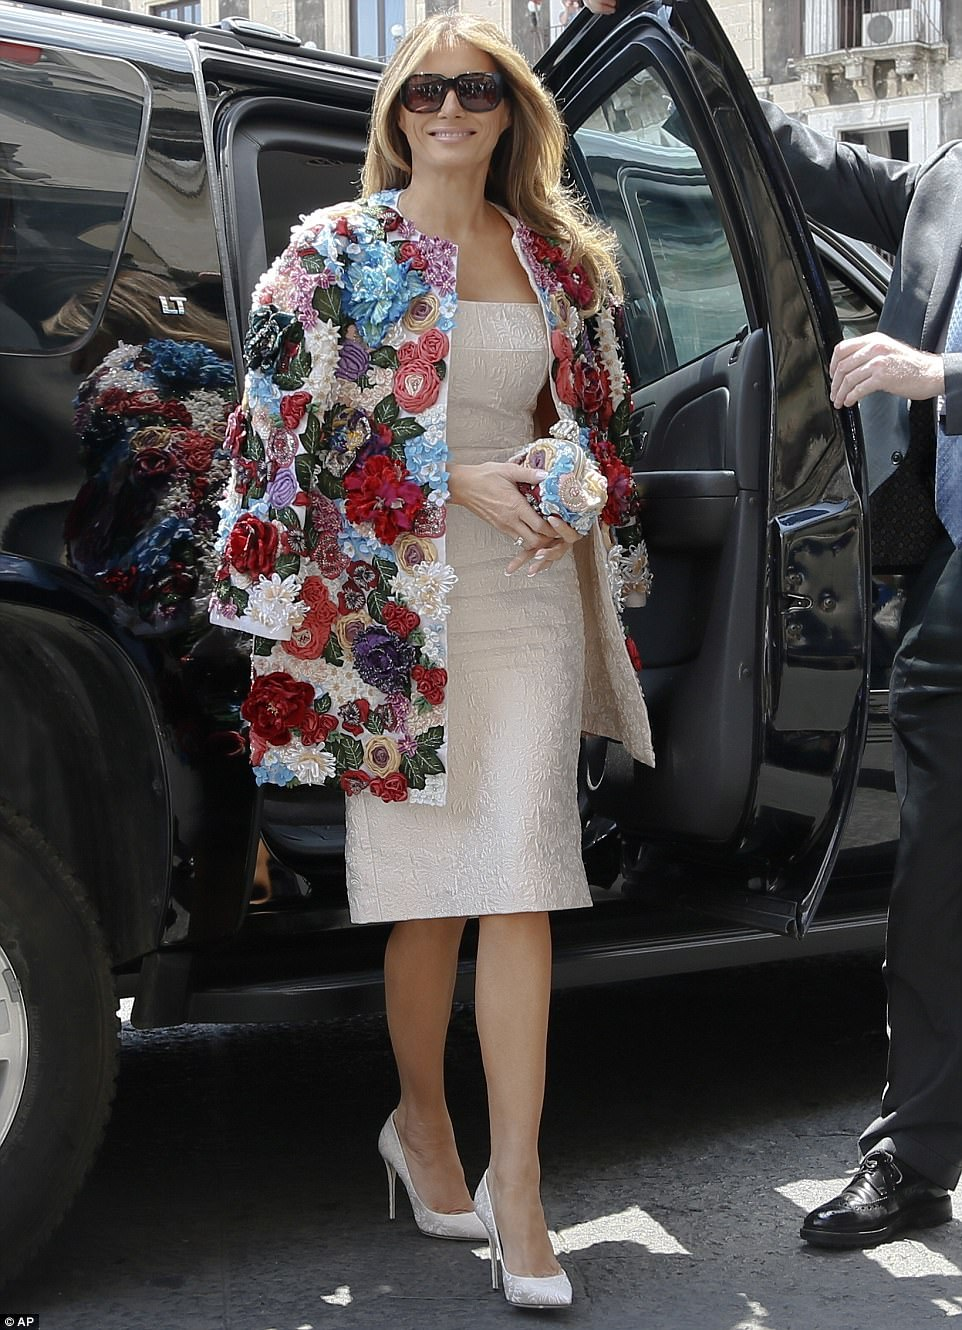 Melania made a very chic arrival in the coastal town of Catania, Sicily, on Friday morning, also wearing Dolce & Gabanna